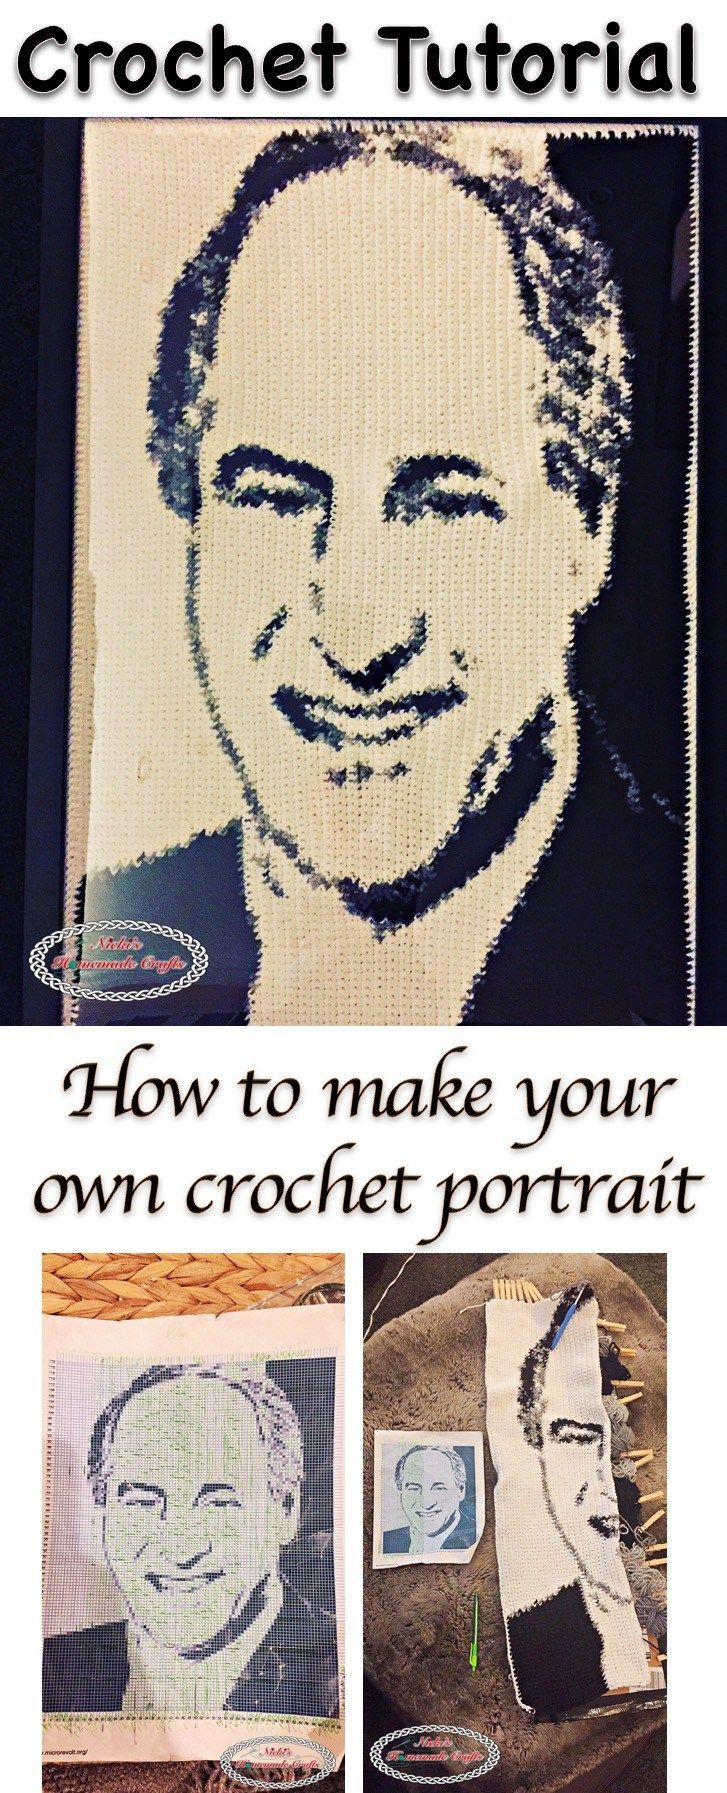 How to make a crochet graphgan or crochet portrait - crochet ...